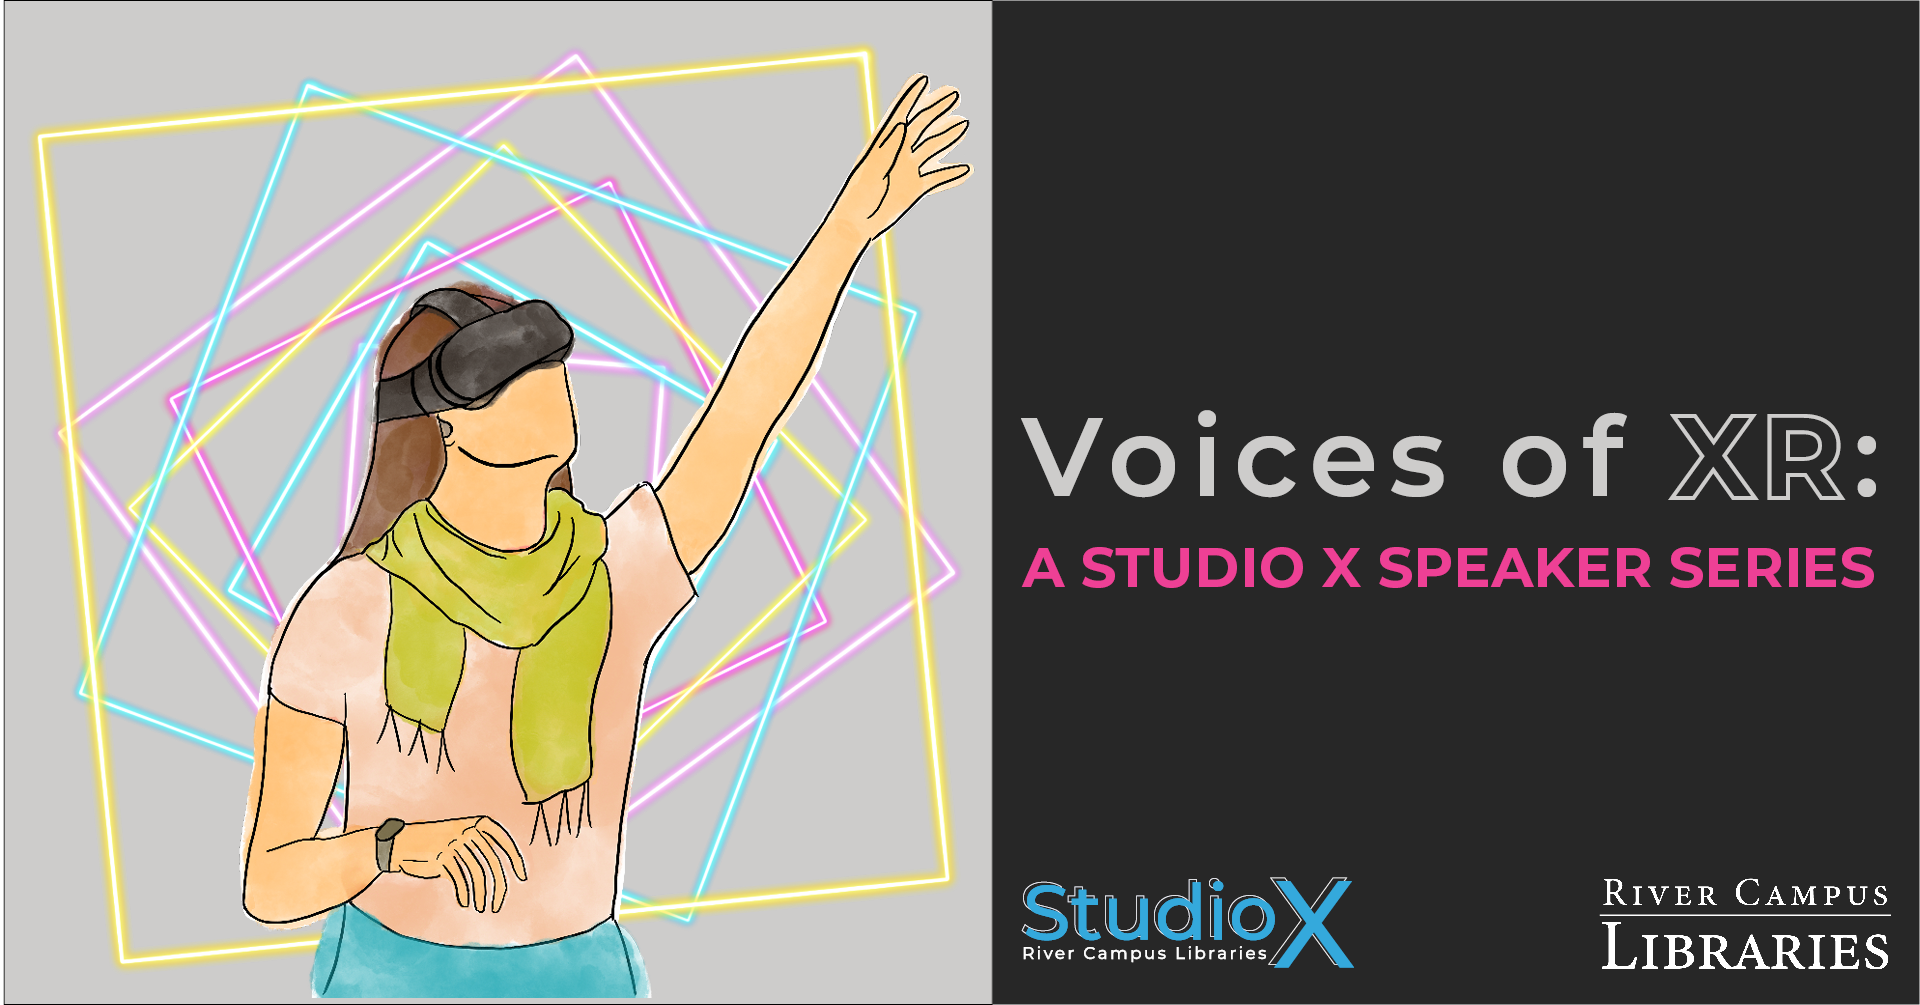 """banner for XR speaker series entitled Voices of XR. On the left, an illustration of a person in a headset reaching with neon geometric squares in the background. On the right is text that reads: """"Voices of XR: A Studio X Speaker Series."""" Underneath, is the Studio X and River Campus Libraries wordmarks."""